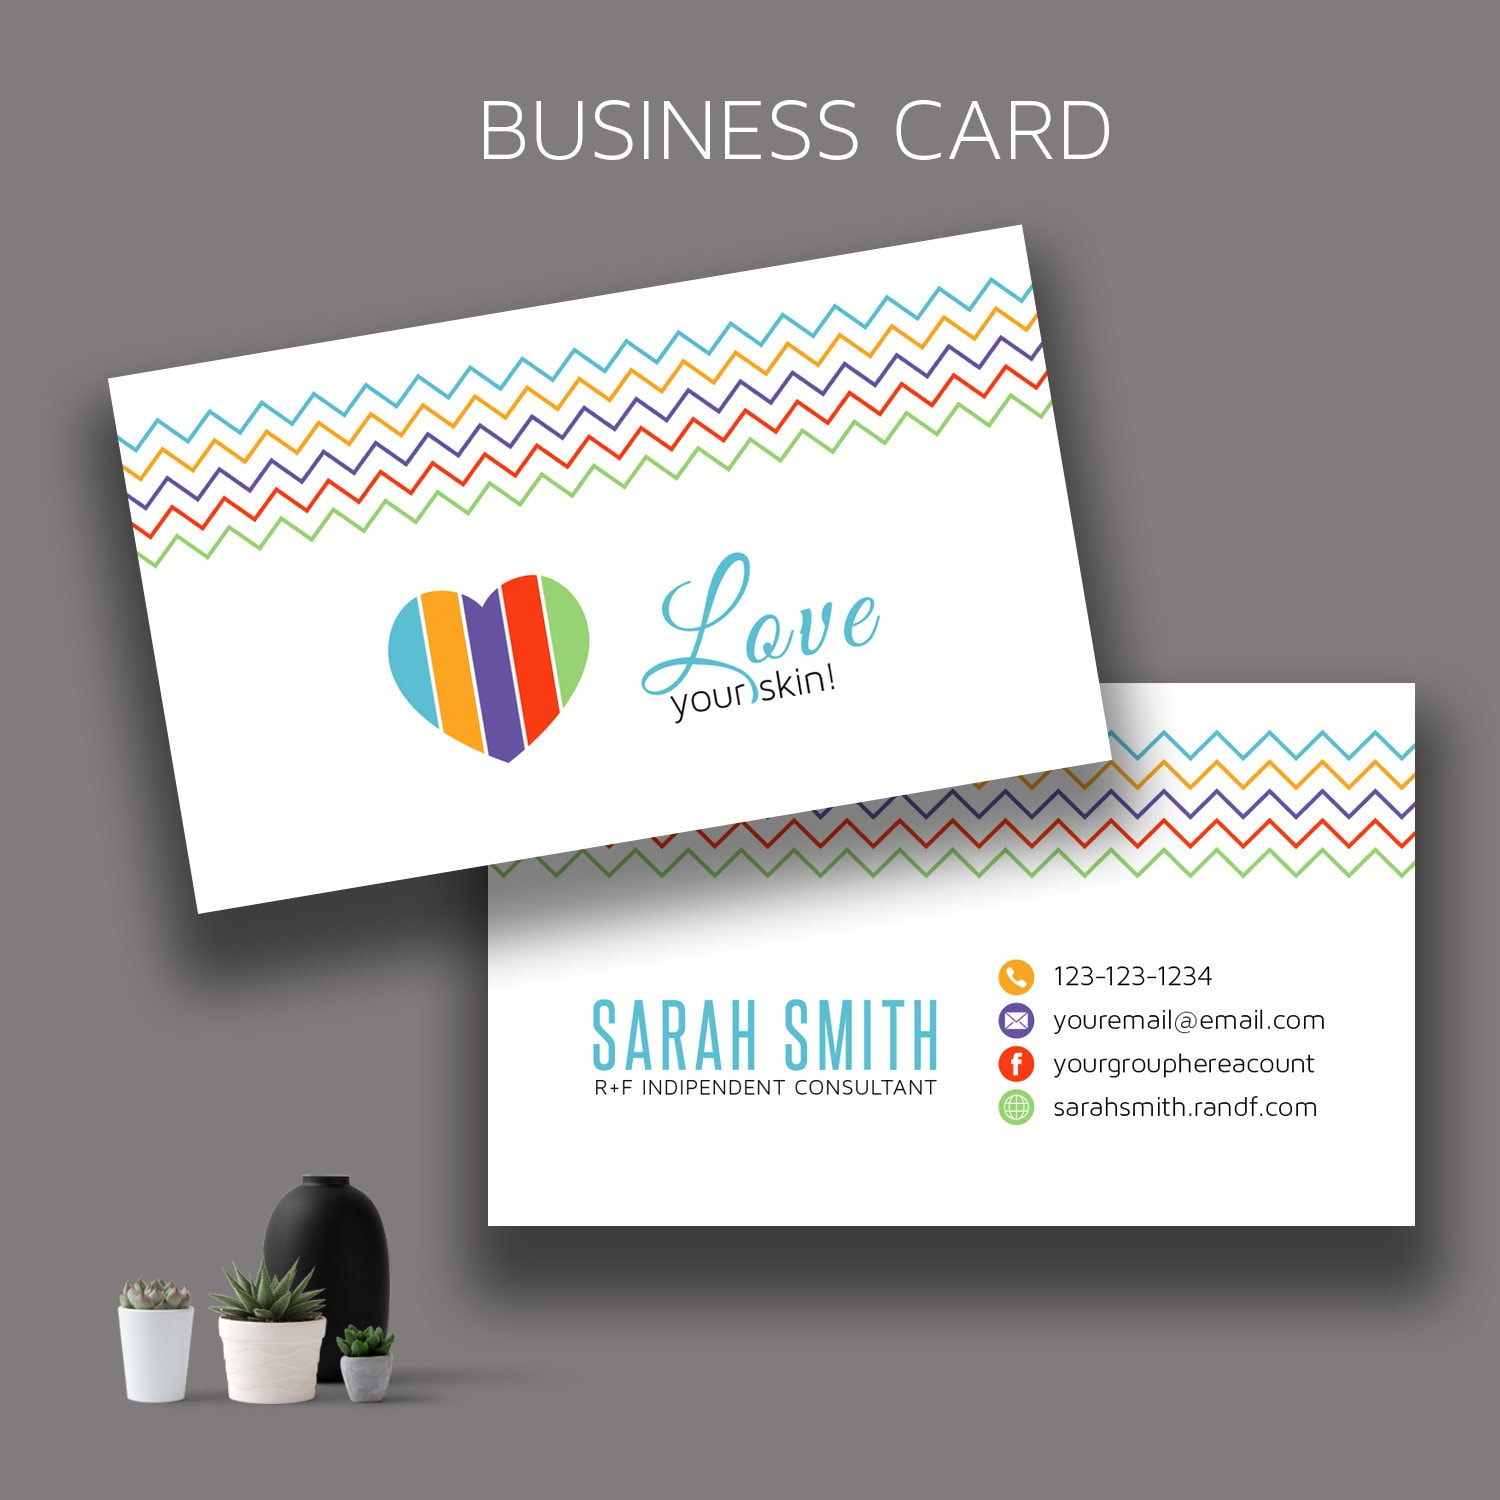 Rodan and Fields Business Cards Skincare Business Card RF